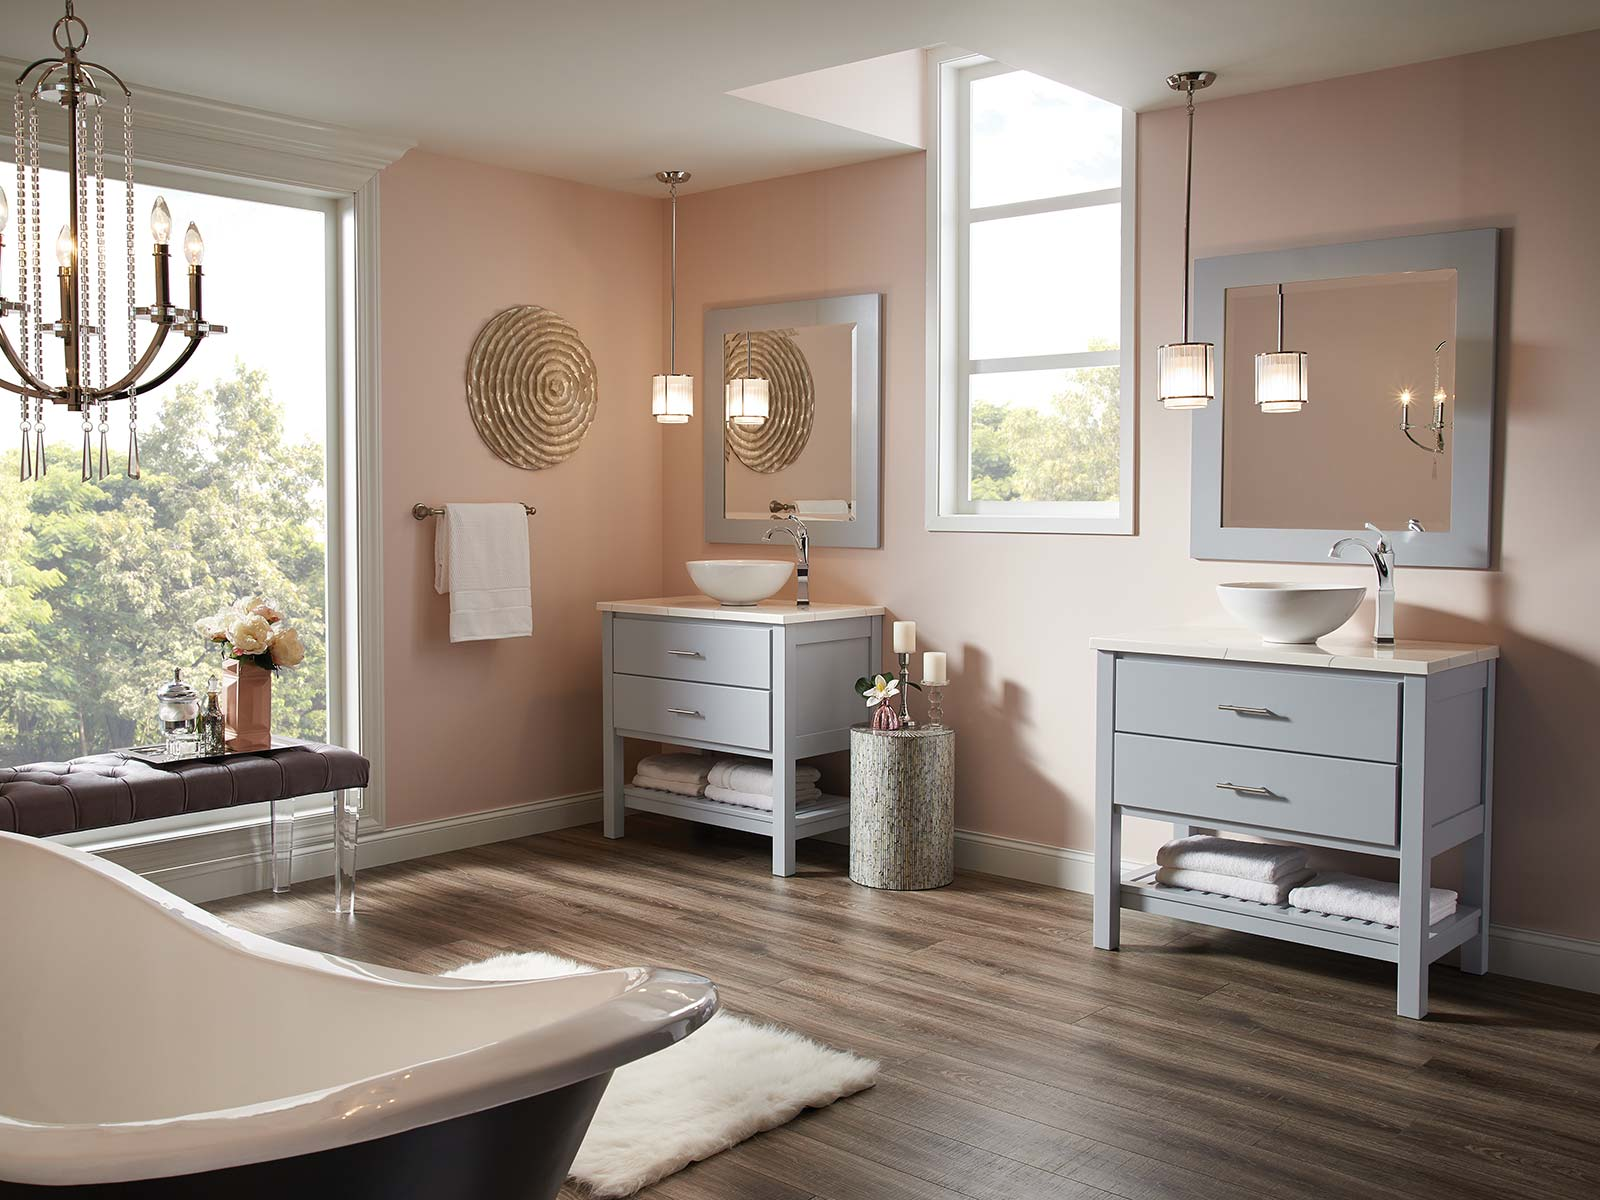 Spacious Room with Matching Vanities